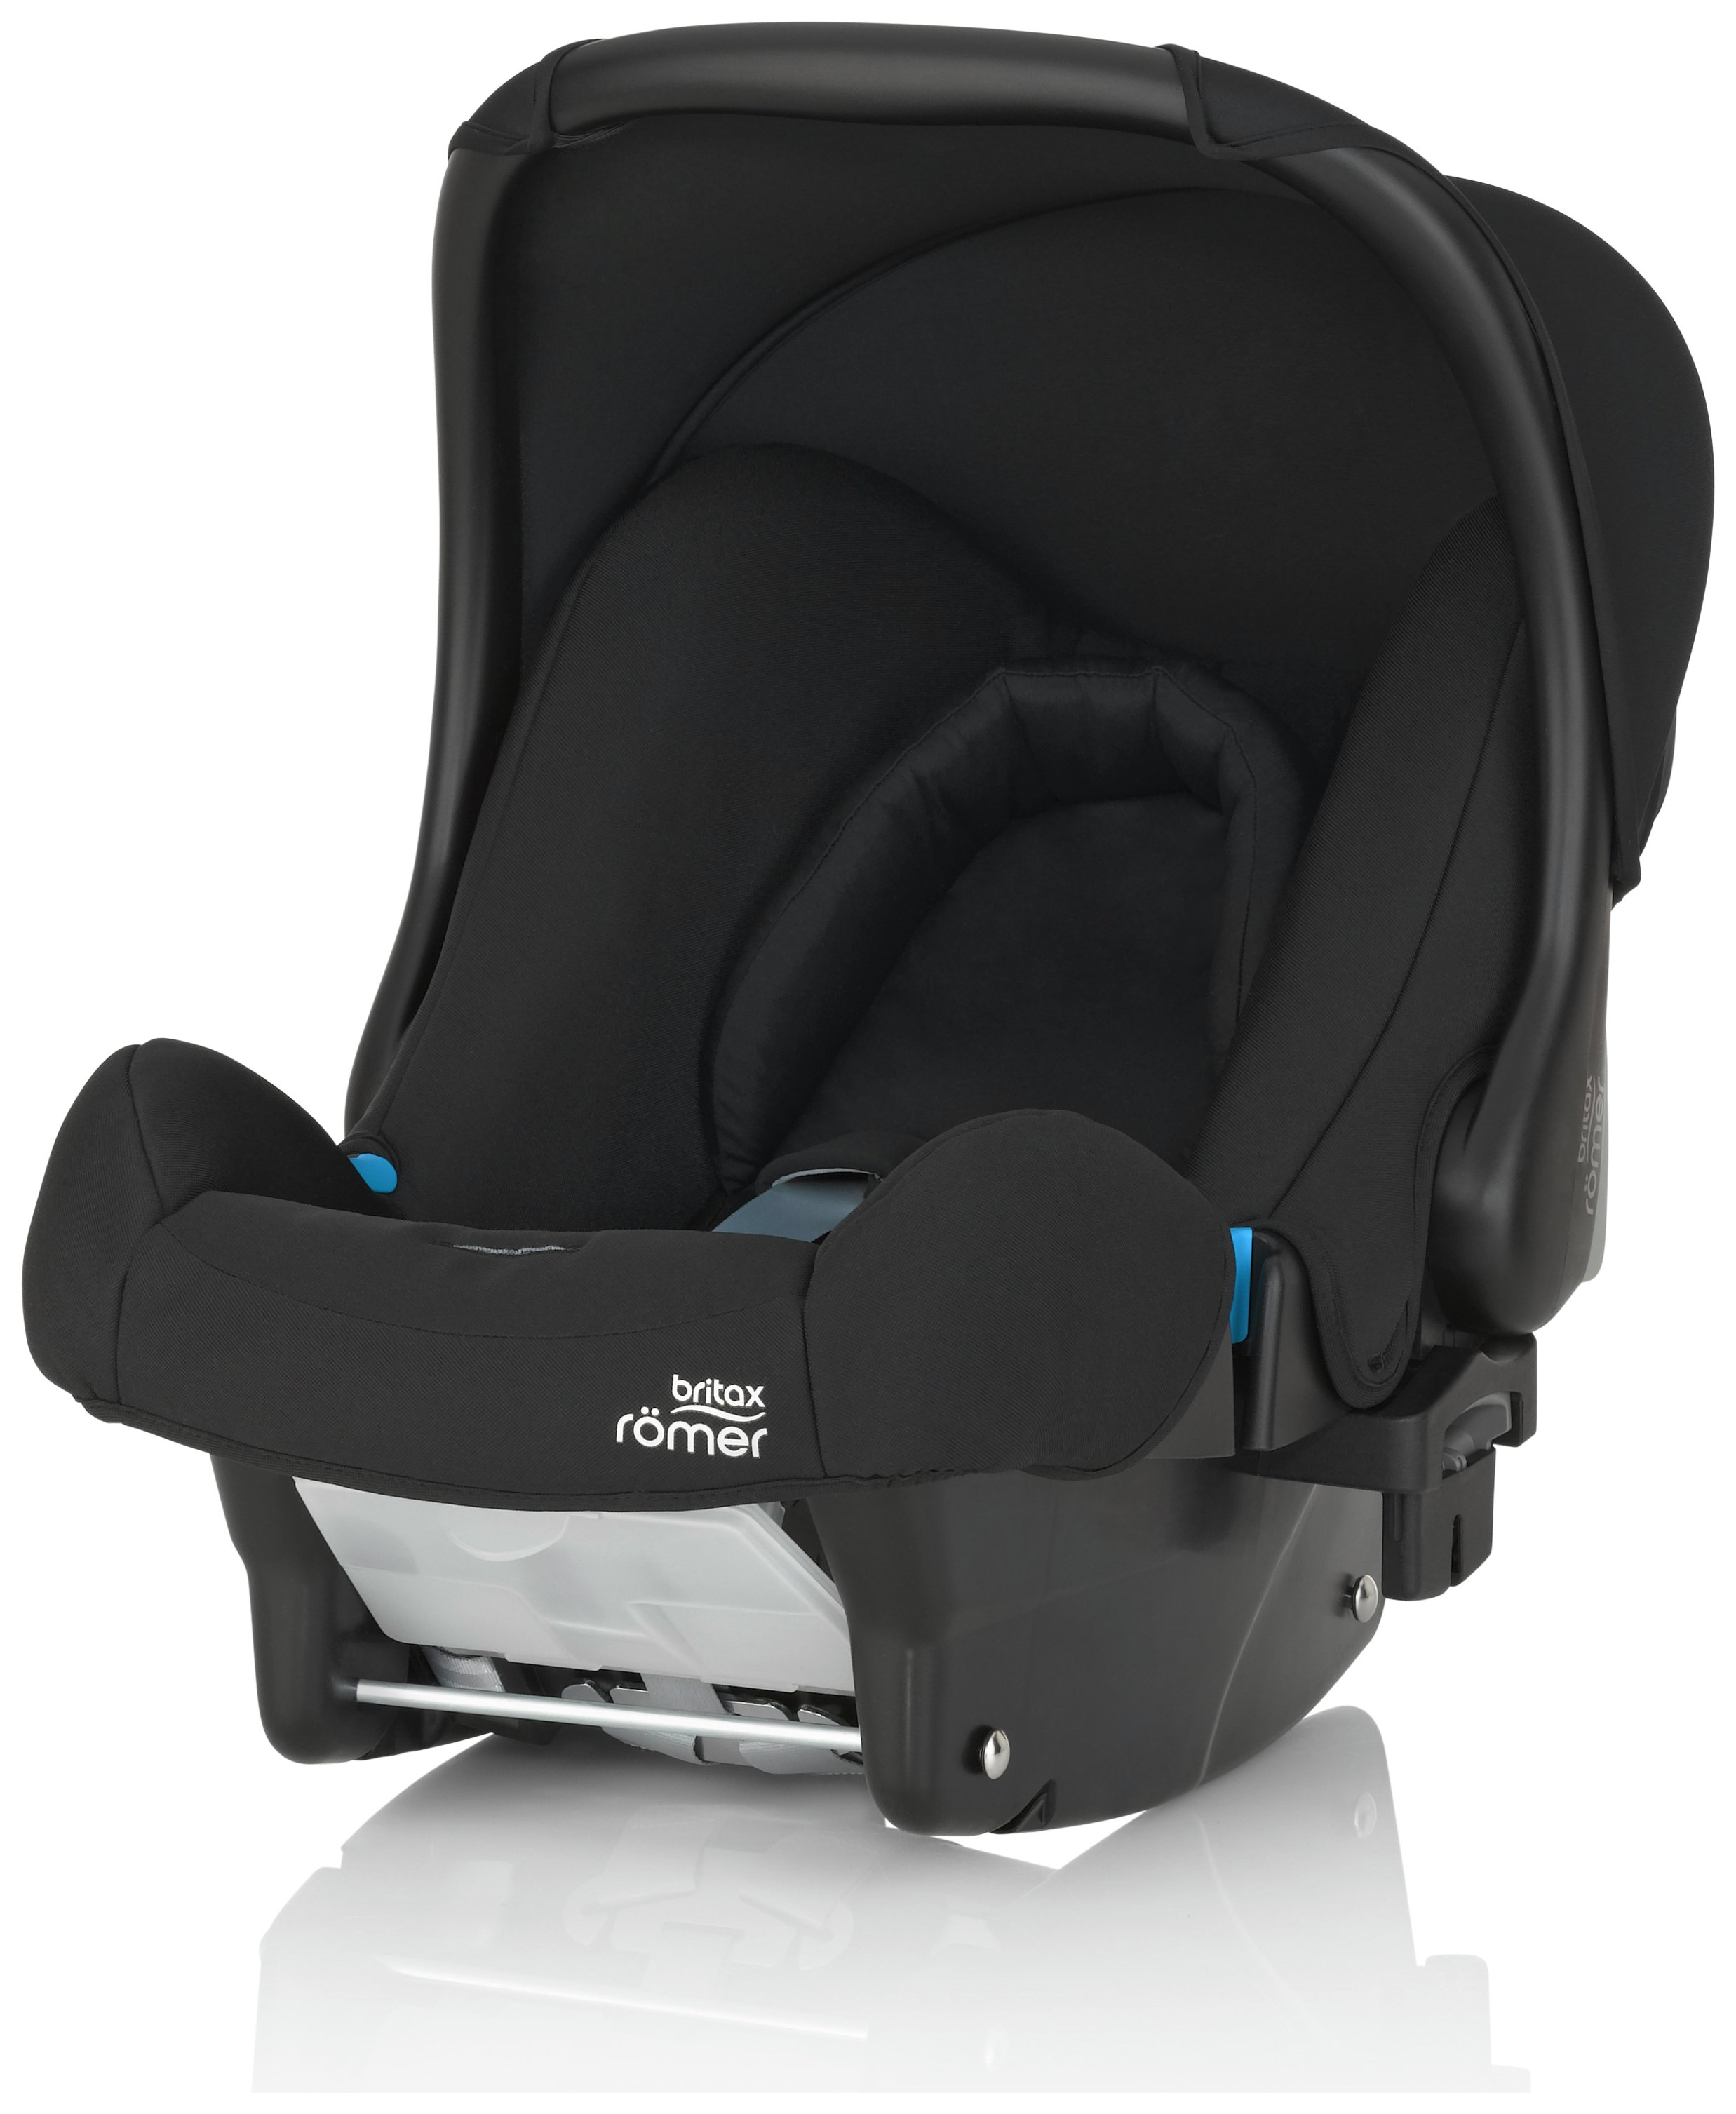 Image of Britax Romer BABY-SAFE Group 0+ Car Seat ??? Cosmos Black